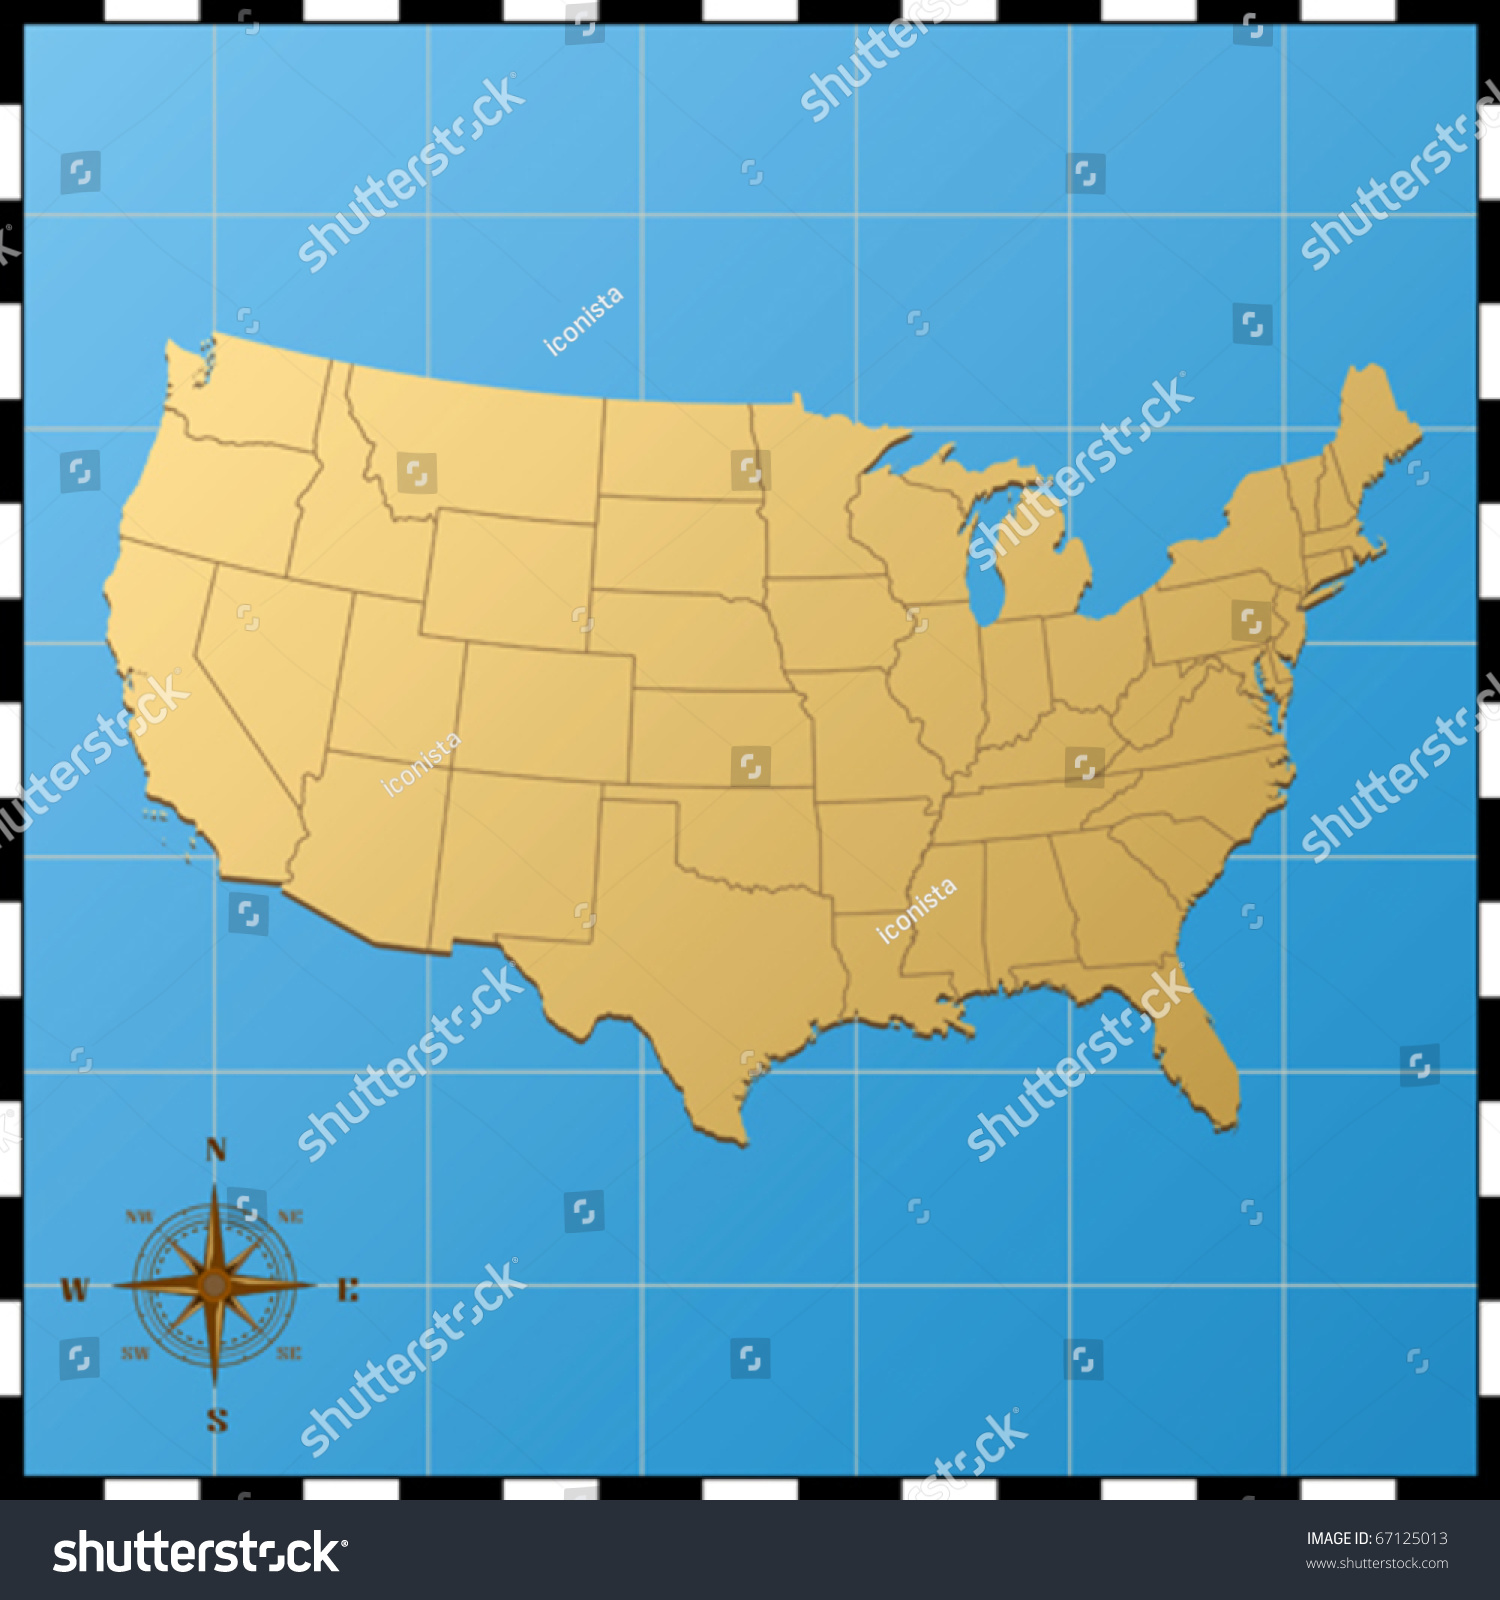 Usa Map Compass Rose Stock Vector Shutterstock - Usa map with compass